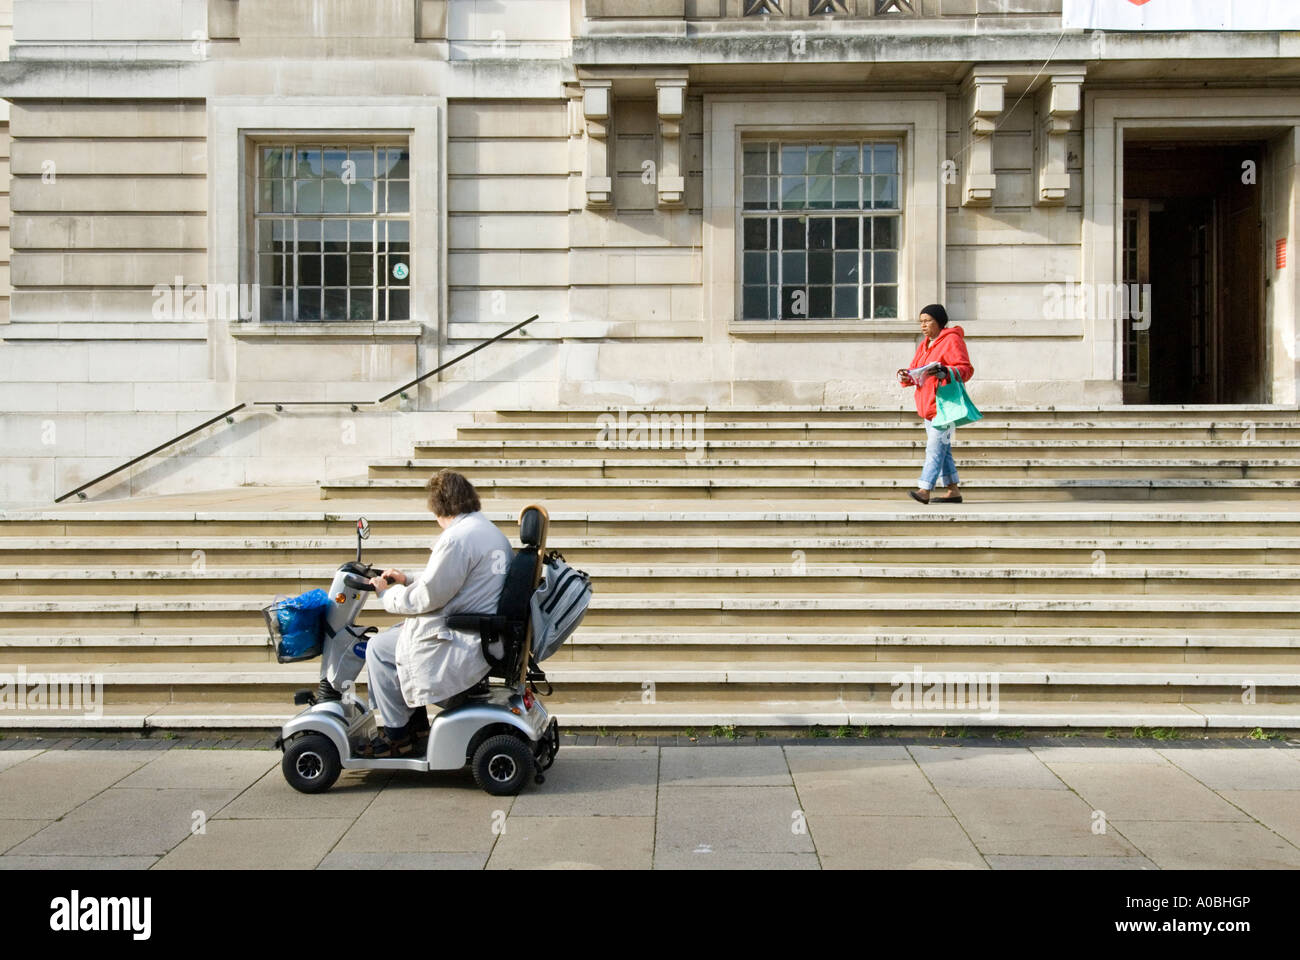 Woman in mobility scooter at foot of steps of Hackney Town Hall, London, England UK - Stock Image